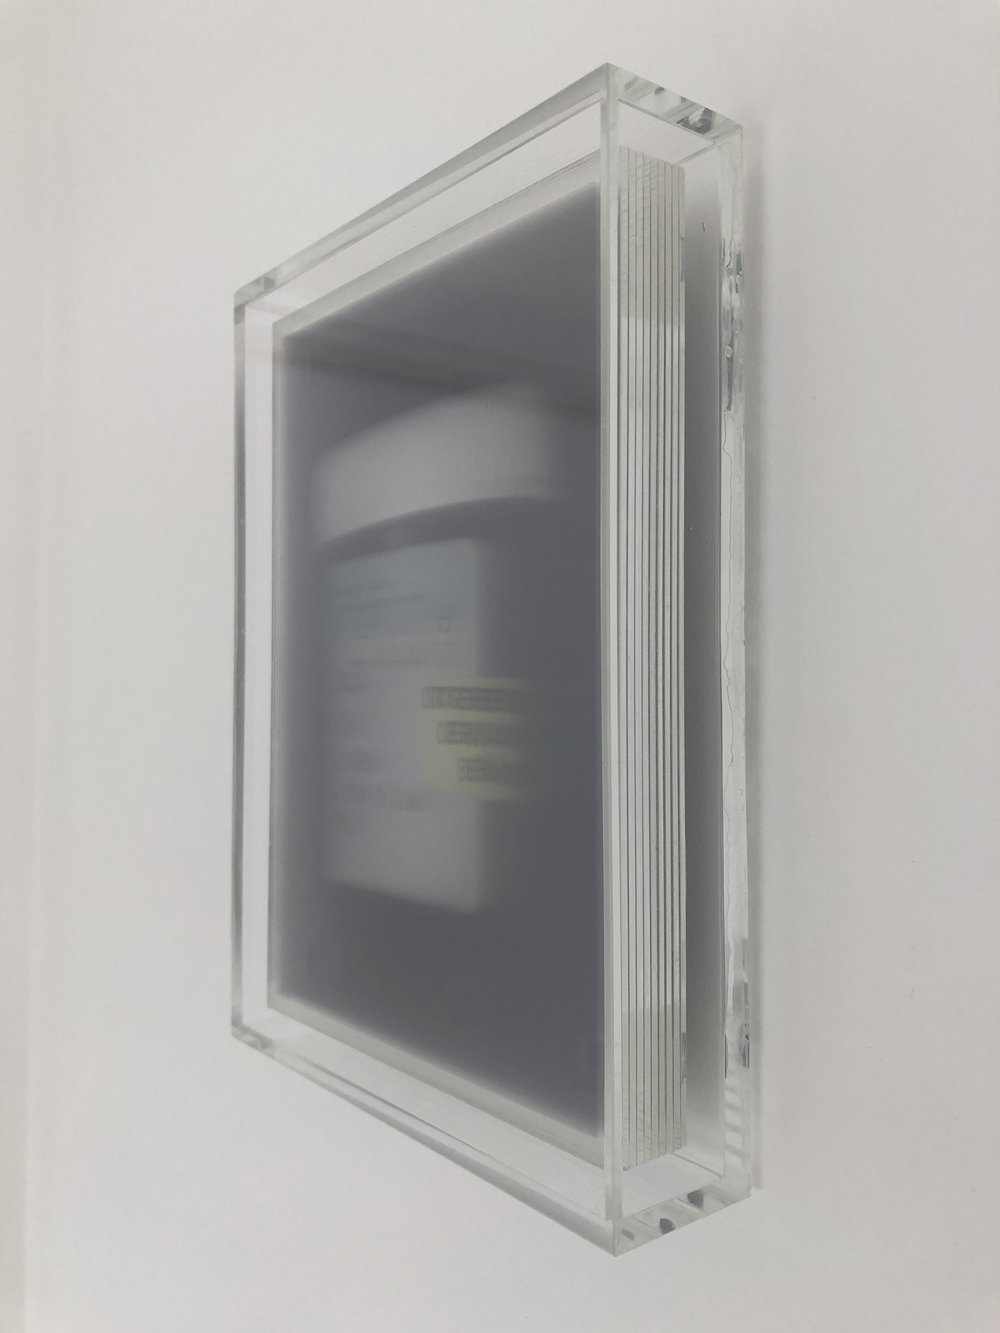 Untitled 02 in perspex frame